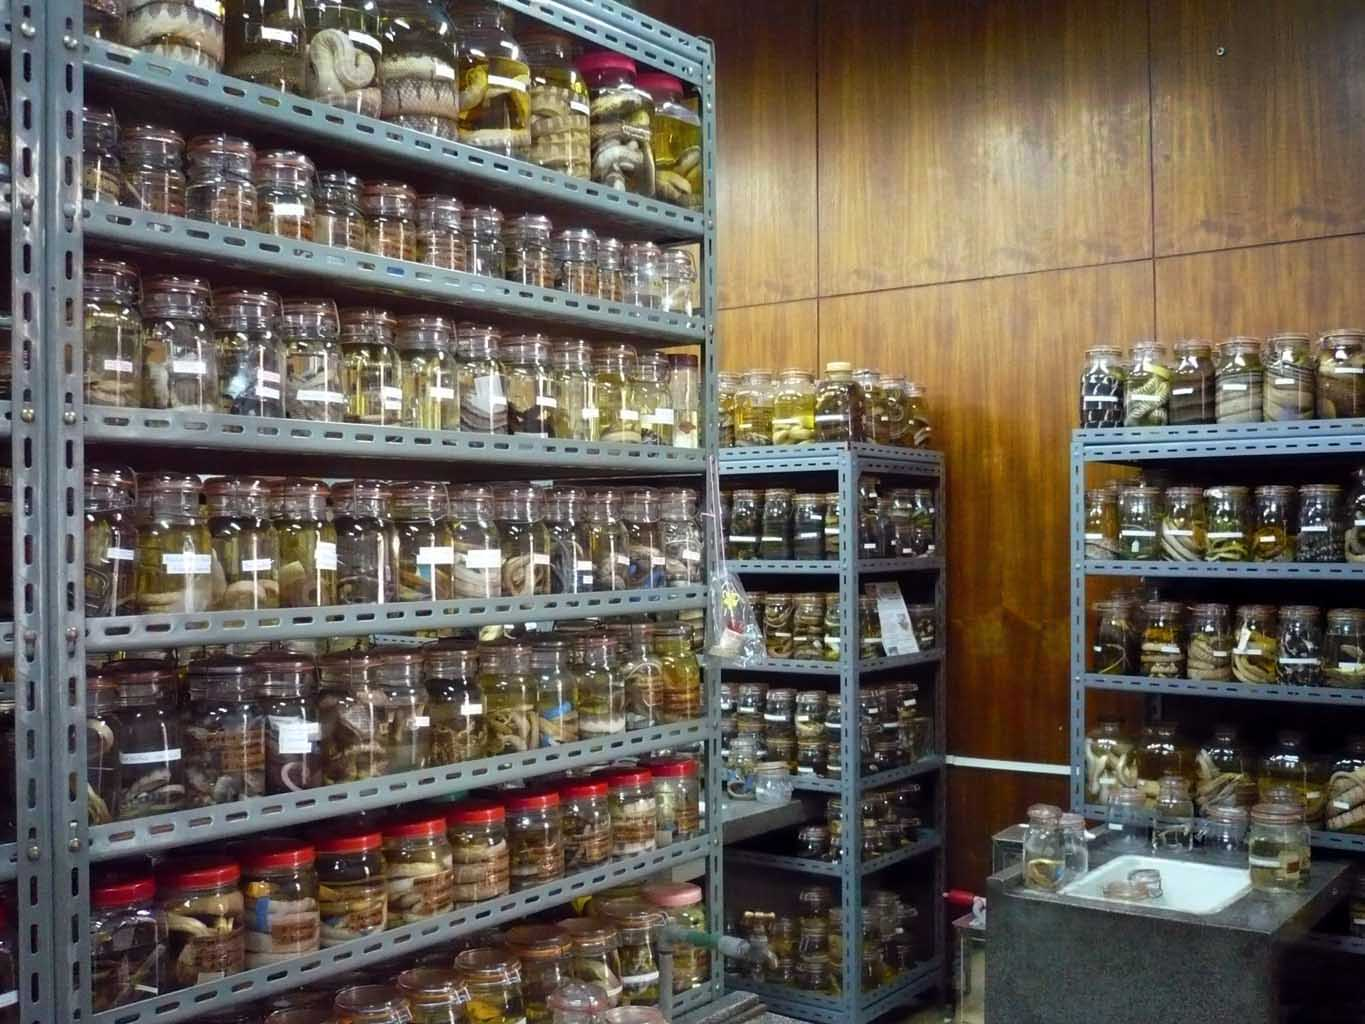 Chulalongkorn University herpetological collections, Bangkok; photo. by O.S.G. Pauwels